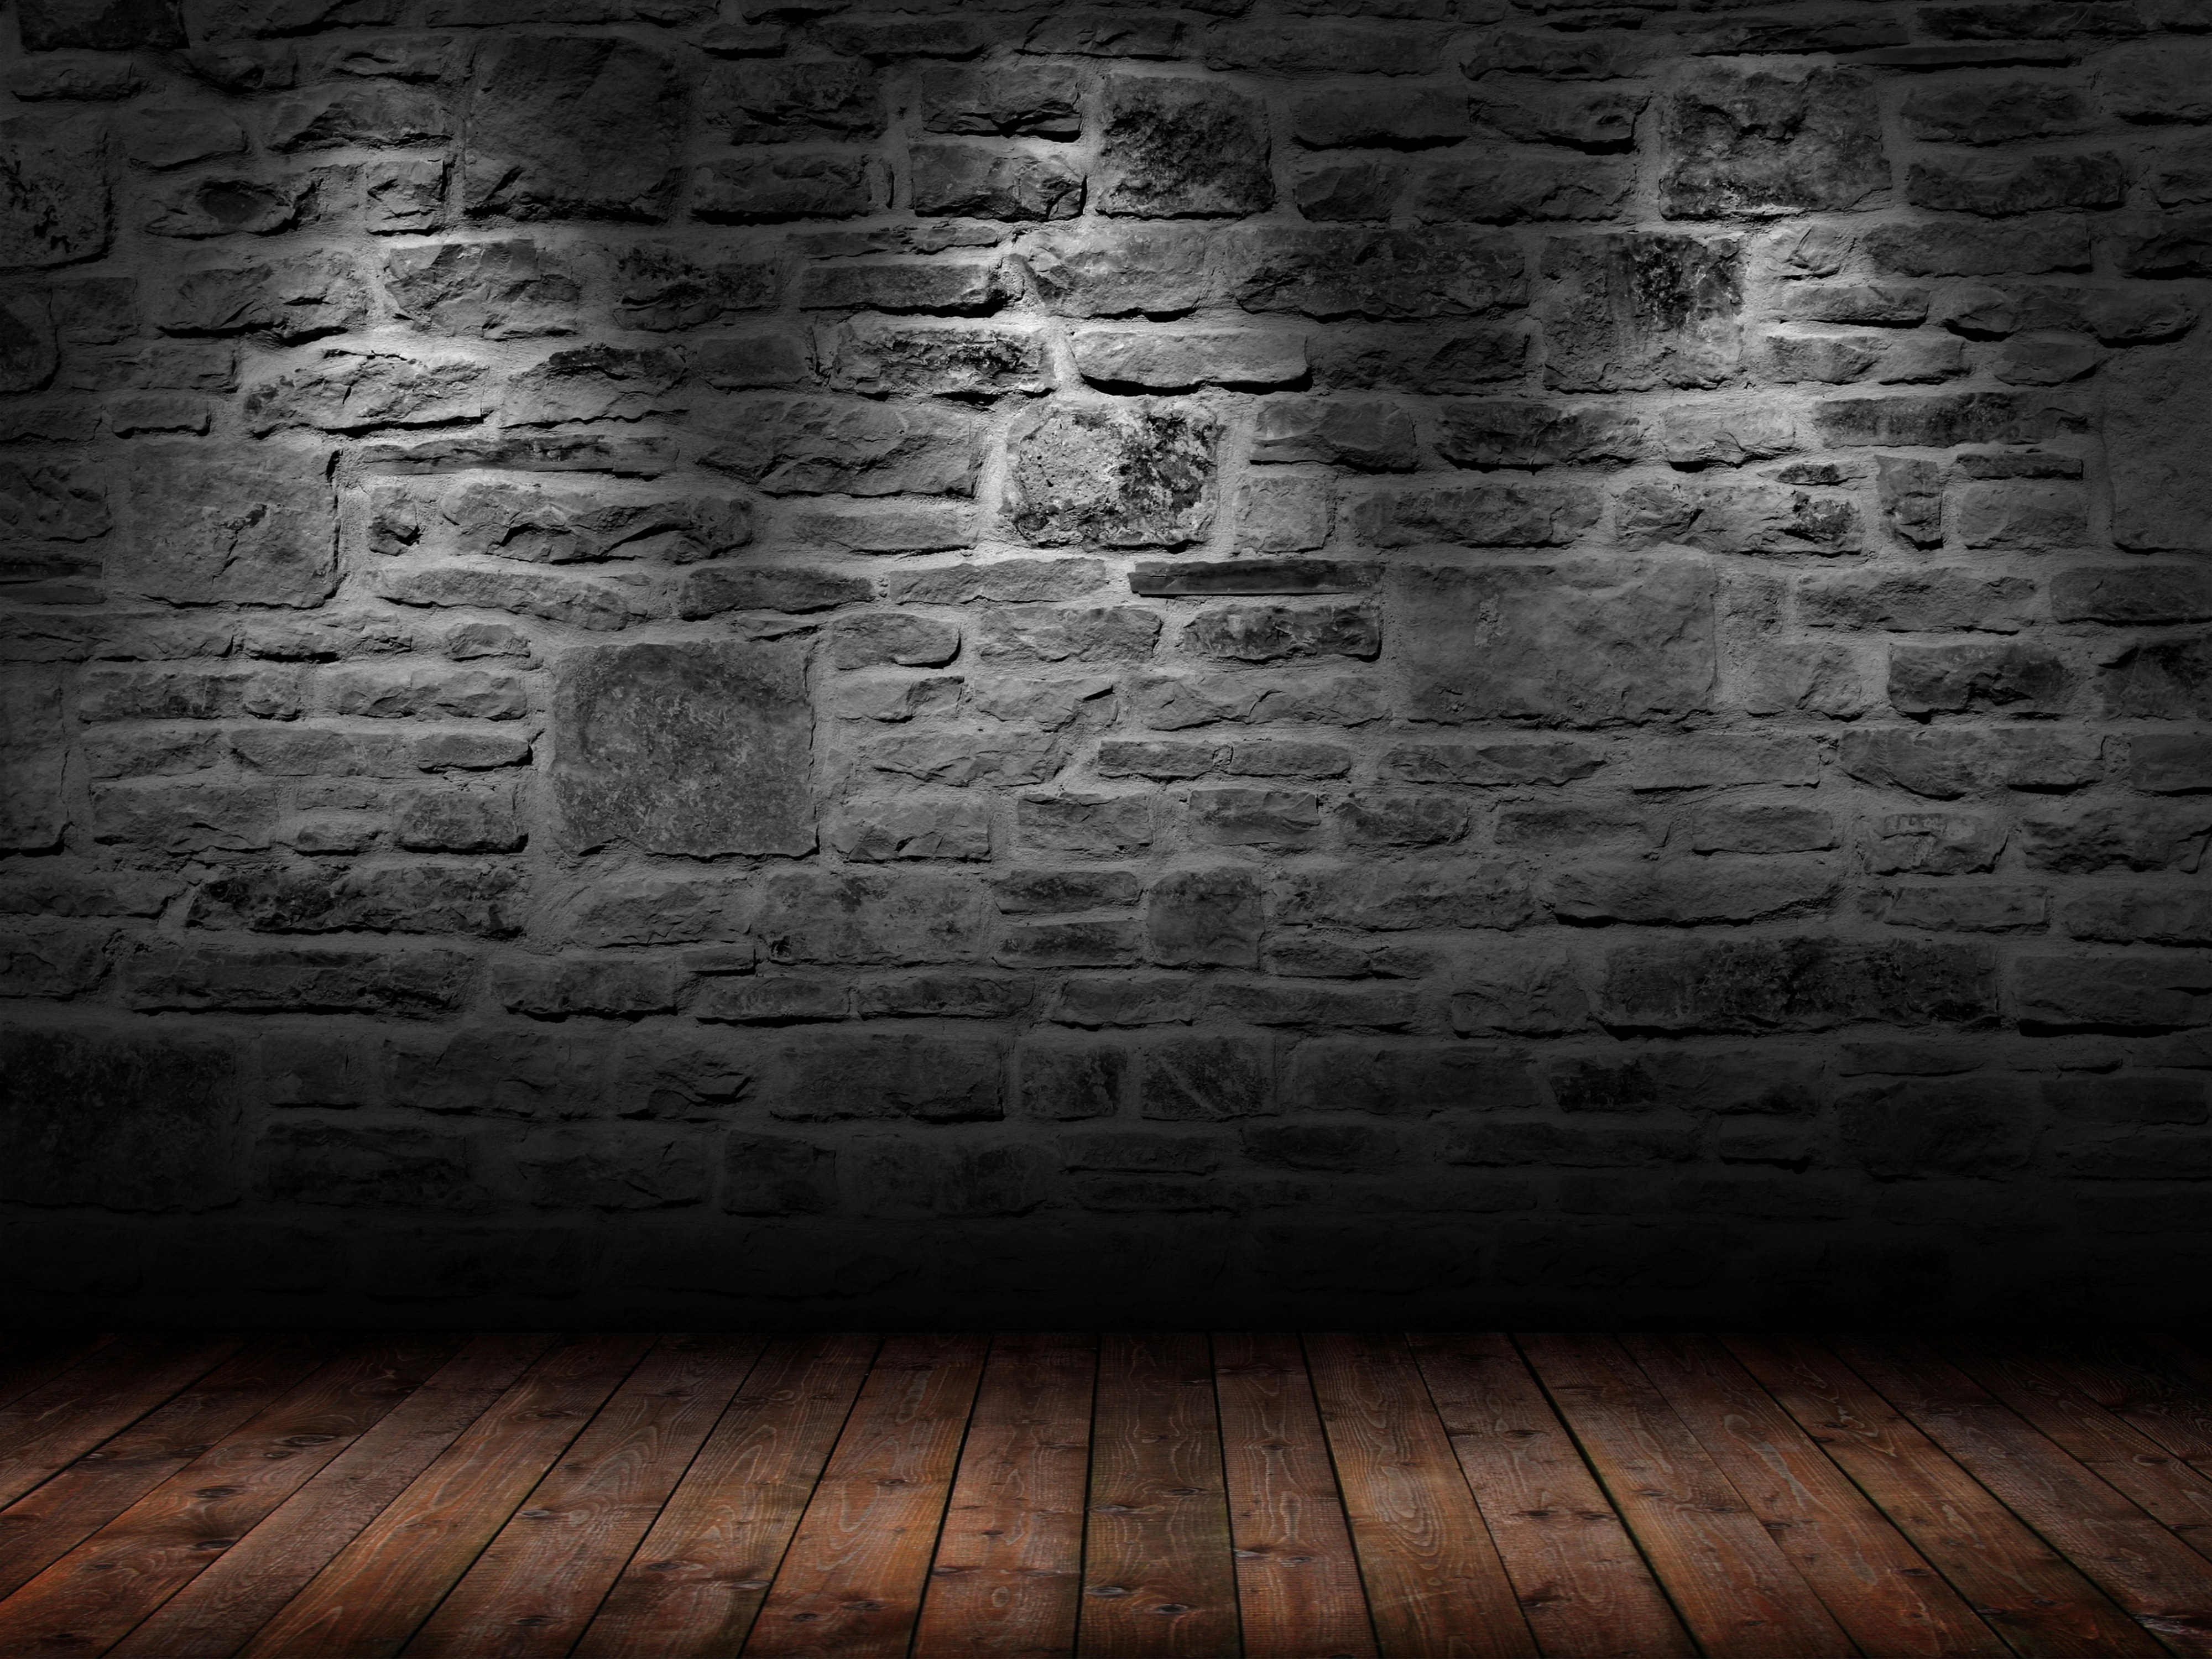 51 brick hd wallpapers background images wallpaper for Wall wallpaper hd